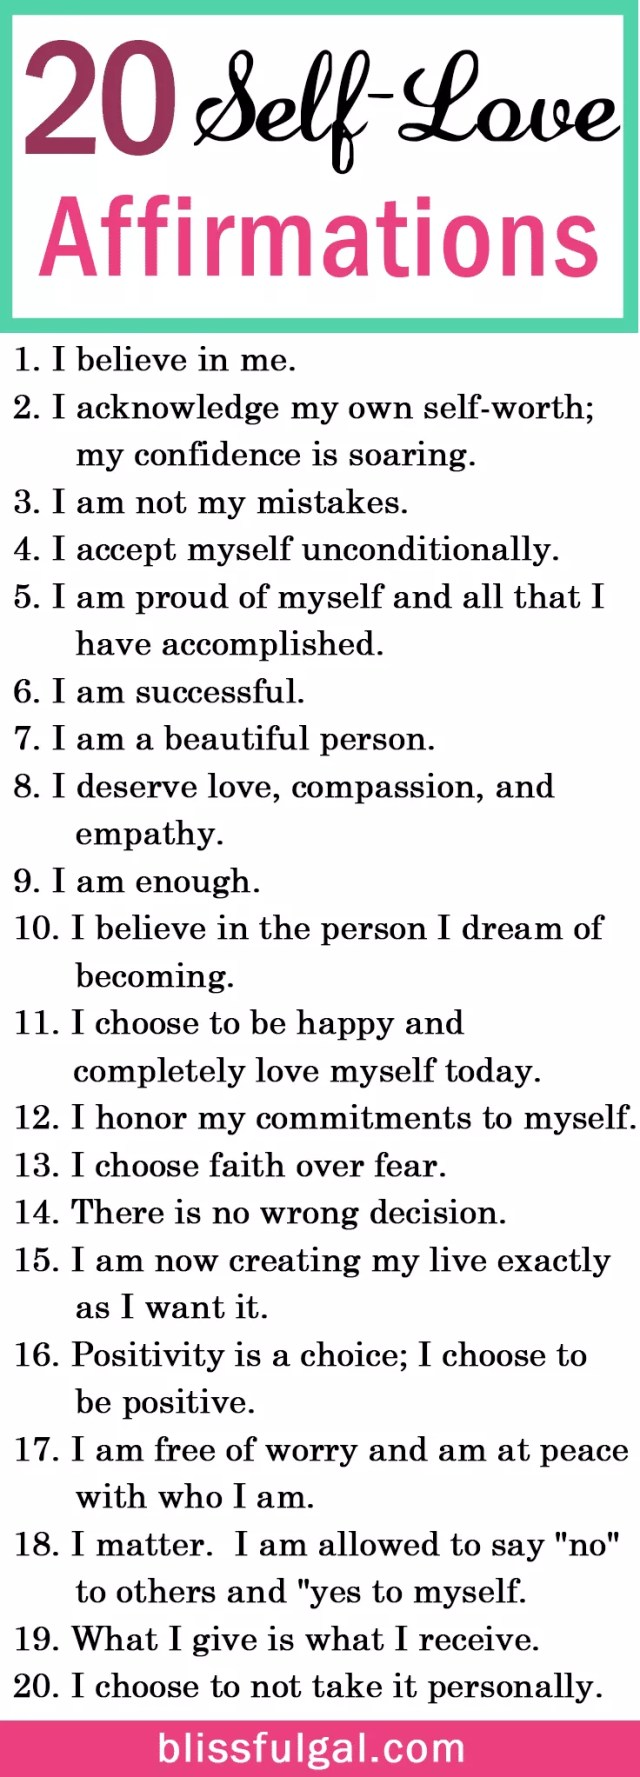 9,932 Positive Affirmations: Your Daily List of Simple Mantras